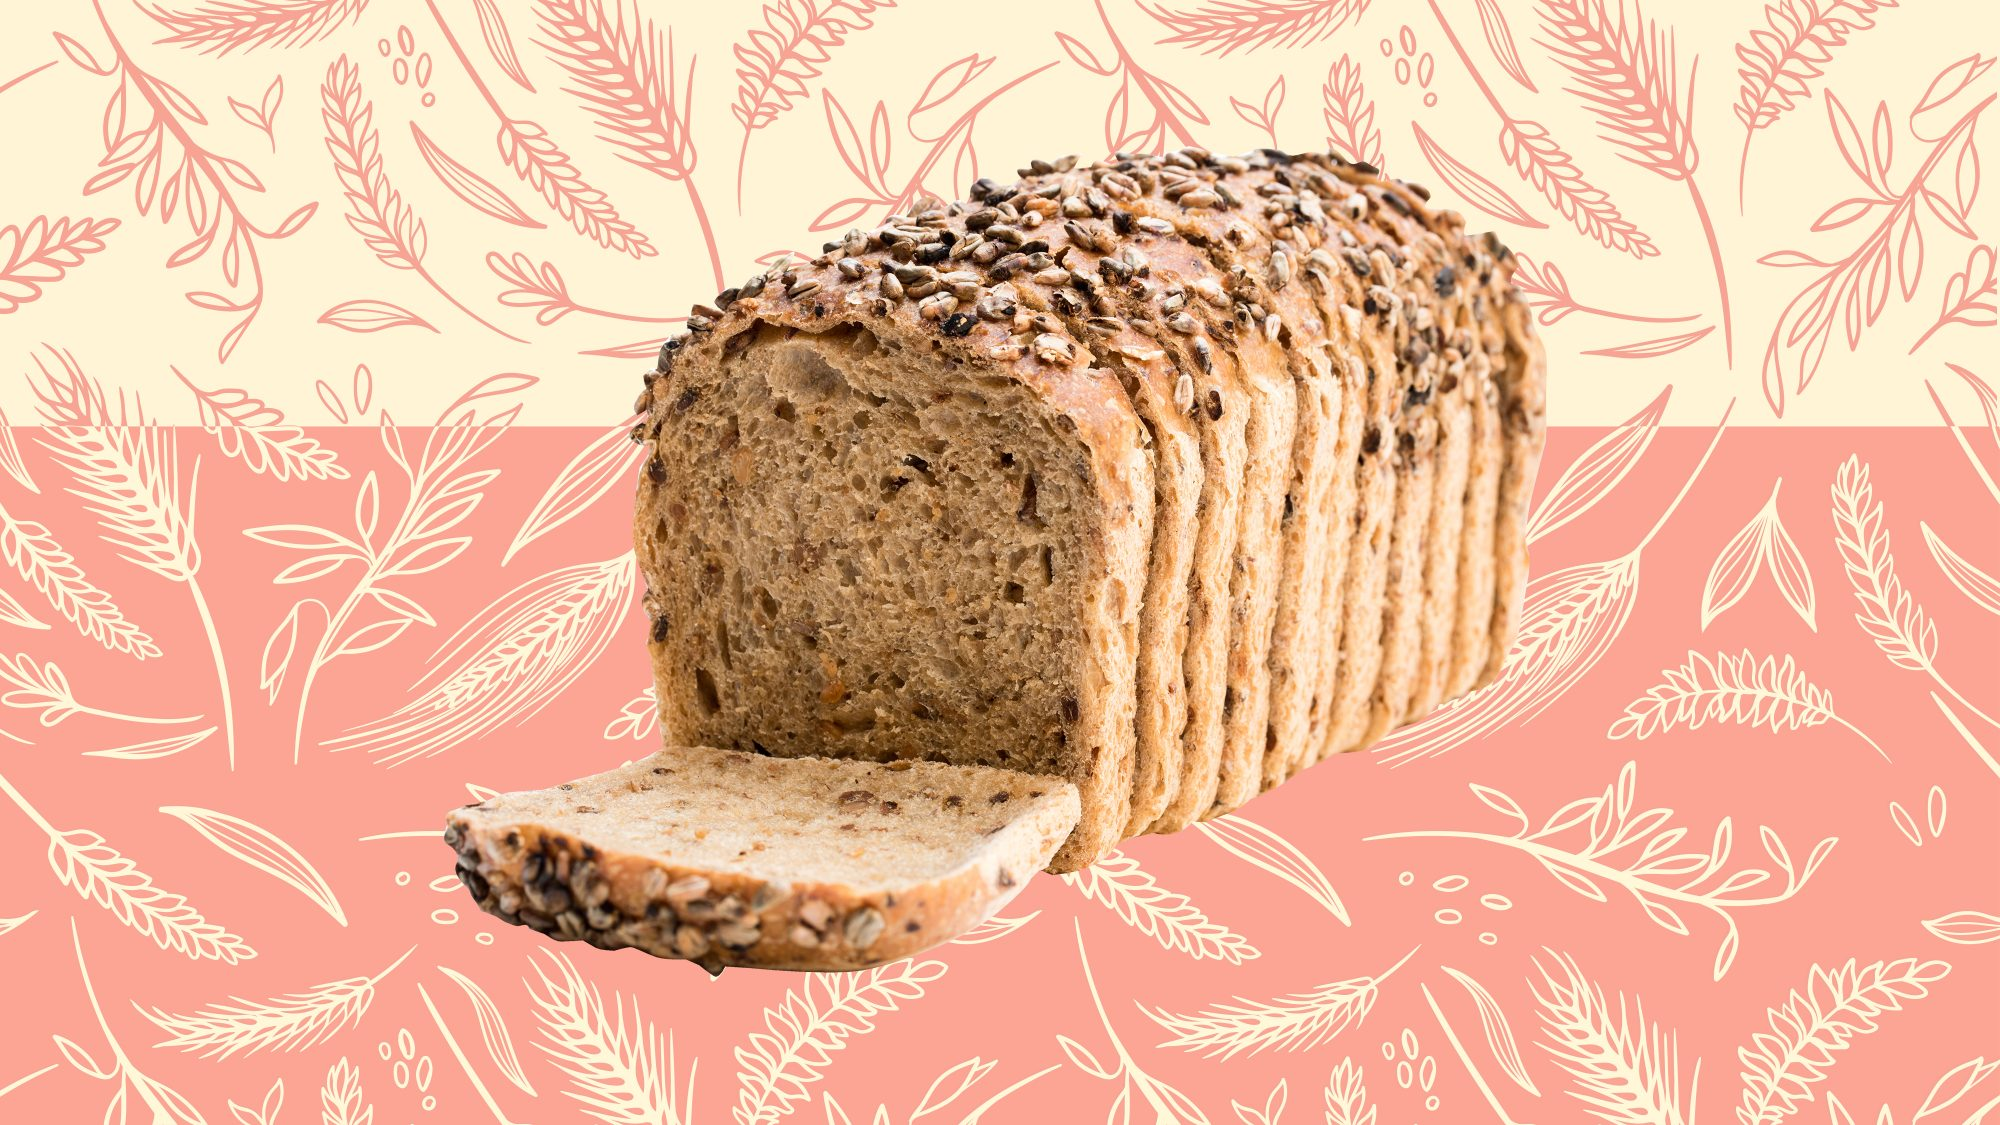 This Is the Healthiest Type Of Bread, According to a Registered Dietitian